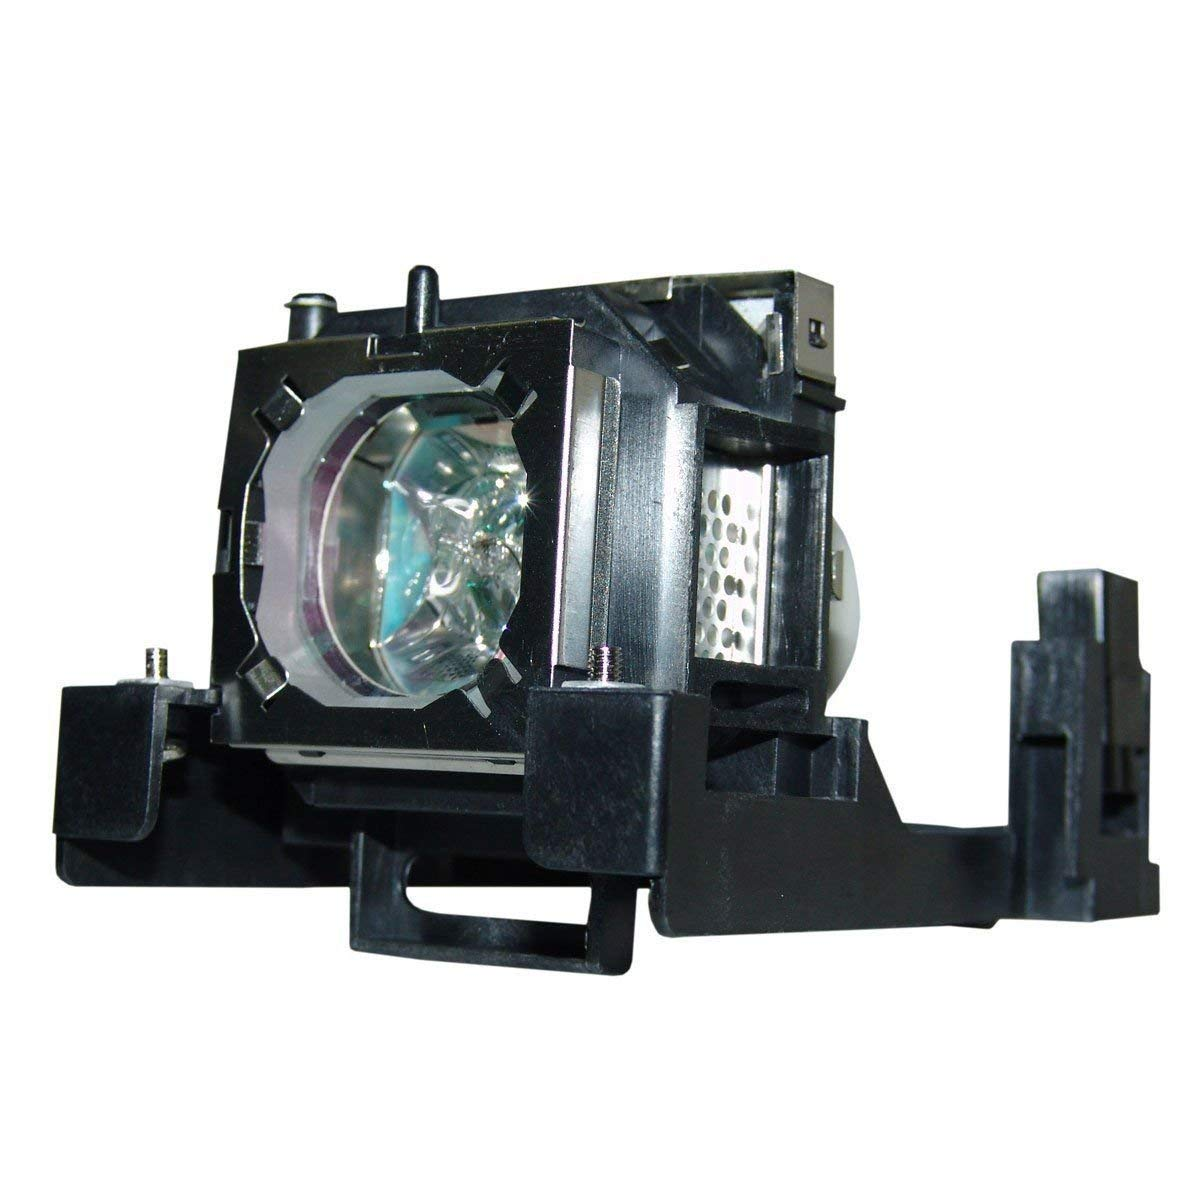 Supermait PRM30-LAMP Lámpara de Repuesto para proyector con ...